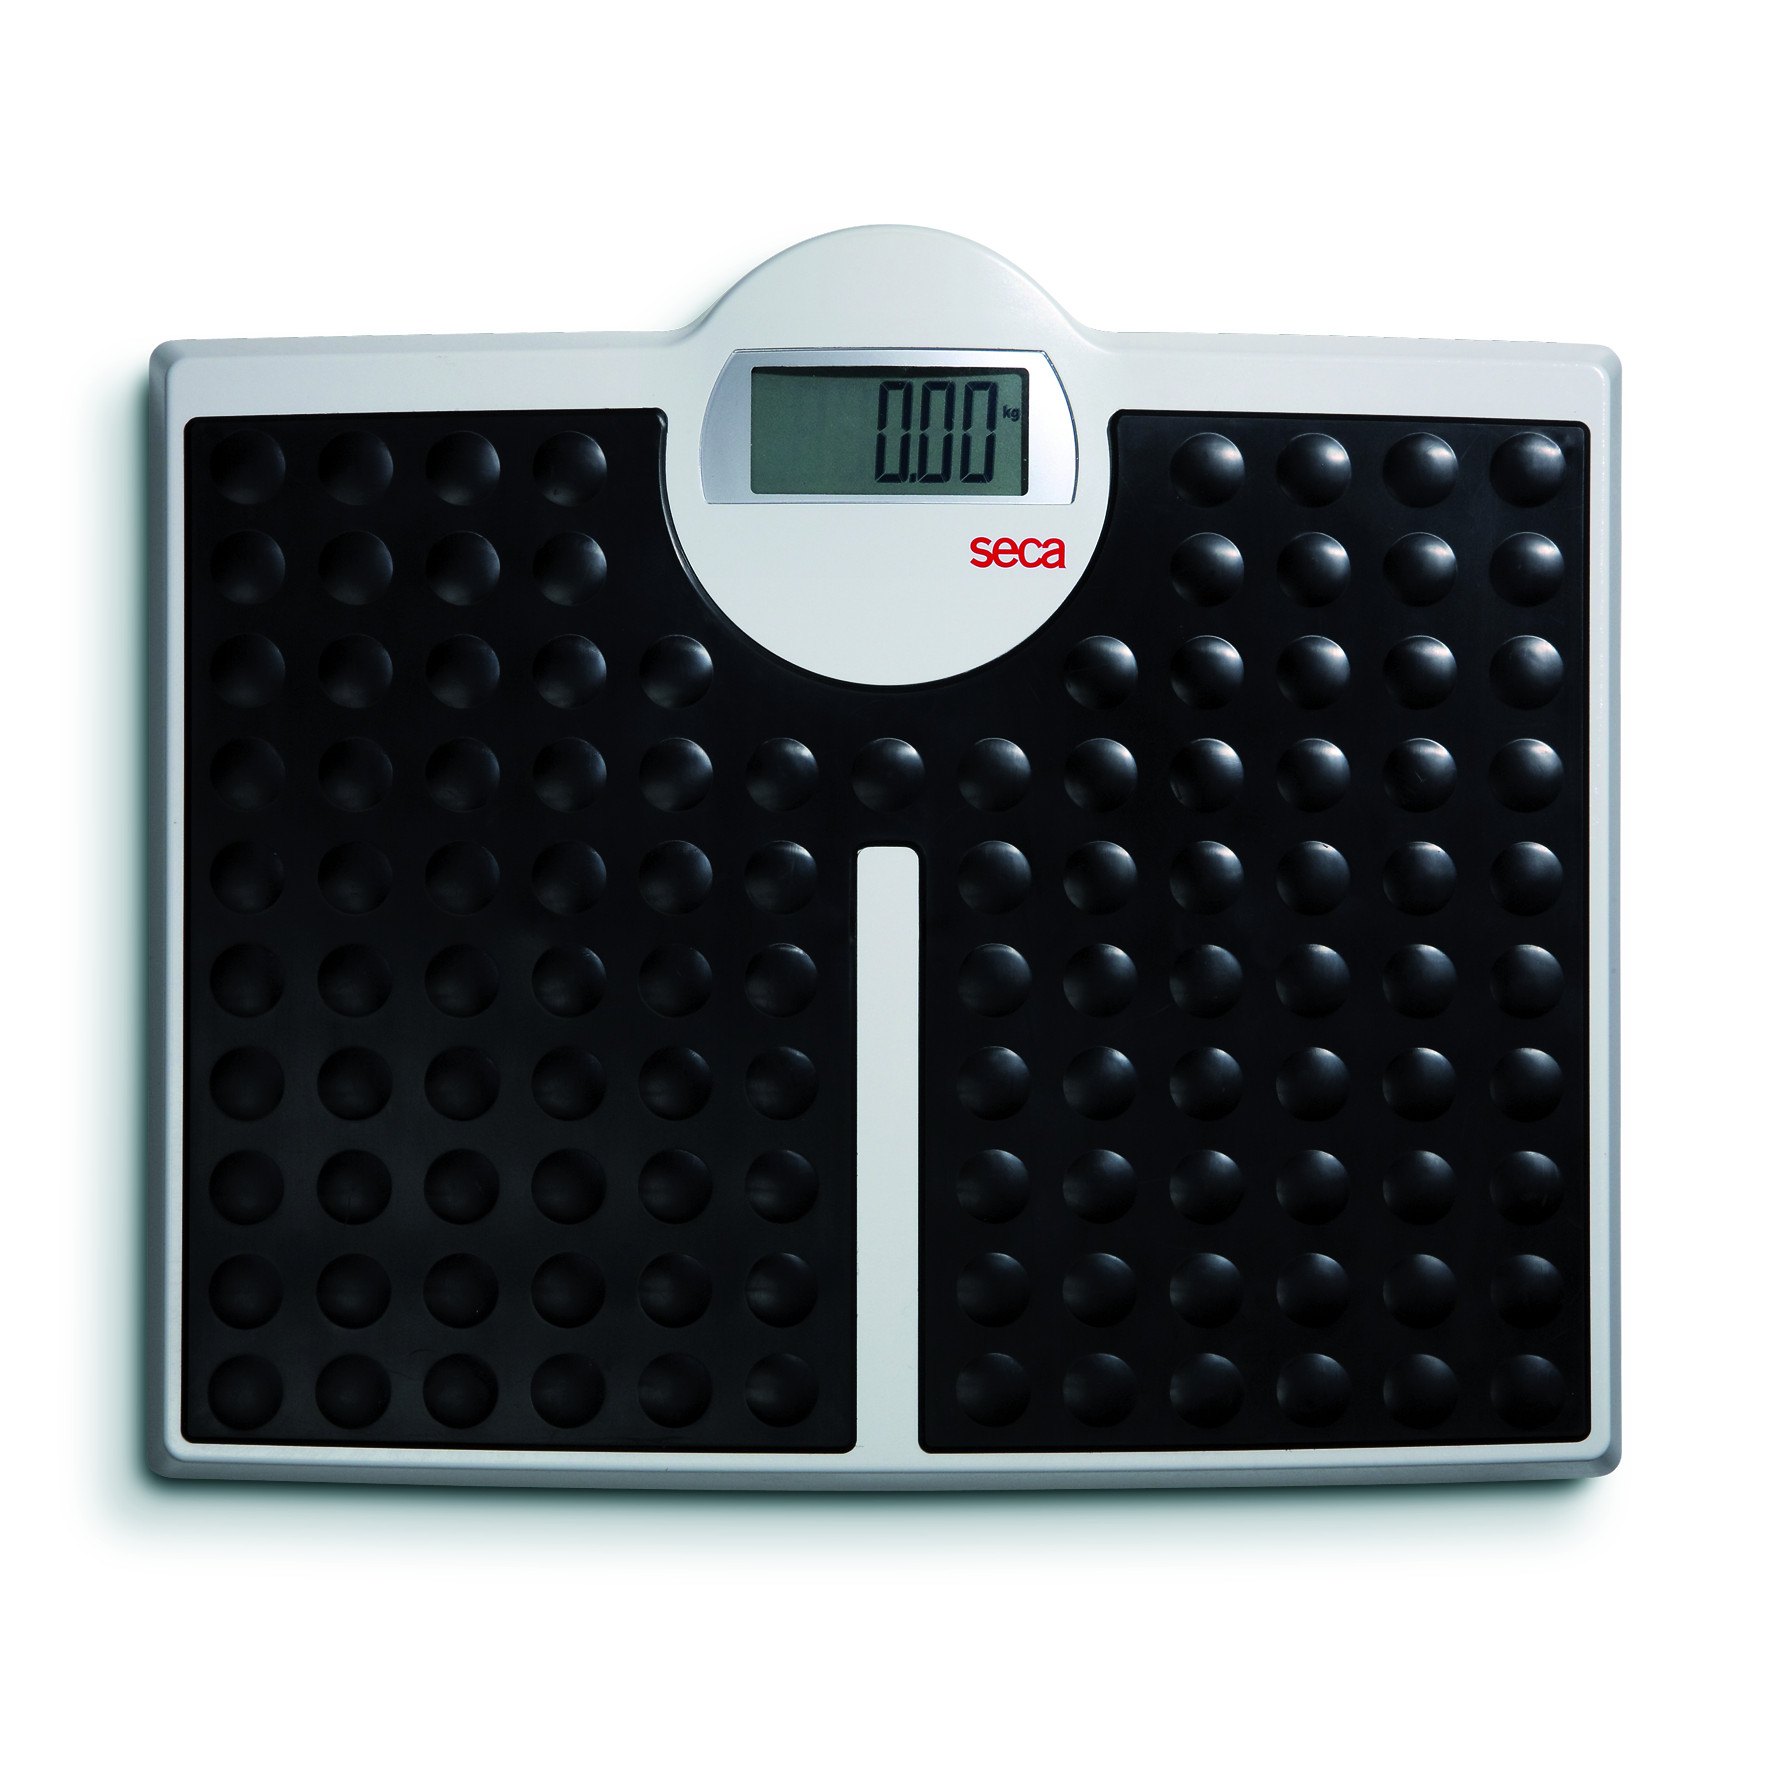 Personal Scales from countyscales.co.uk